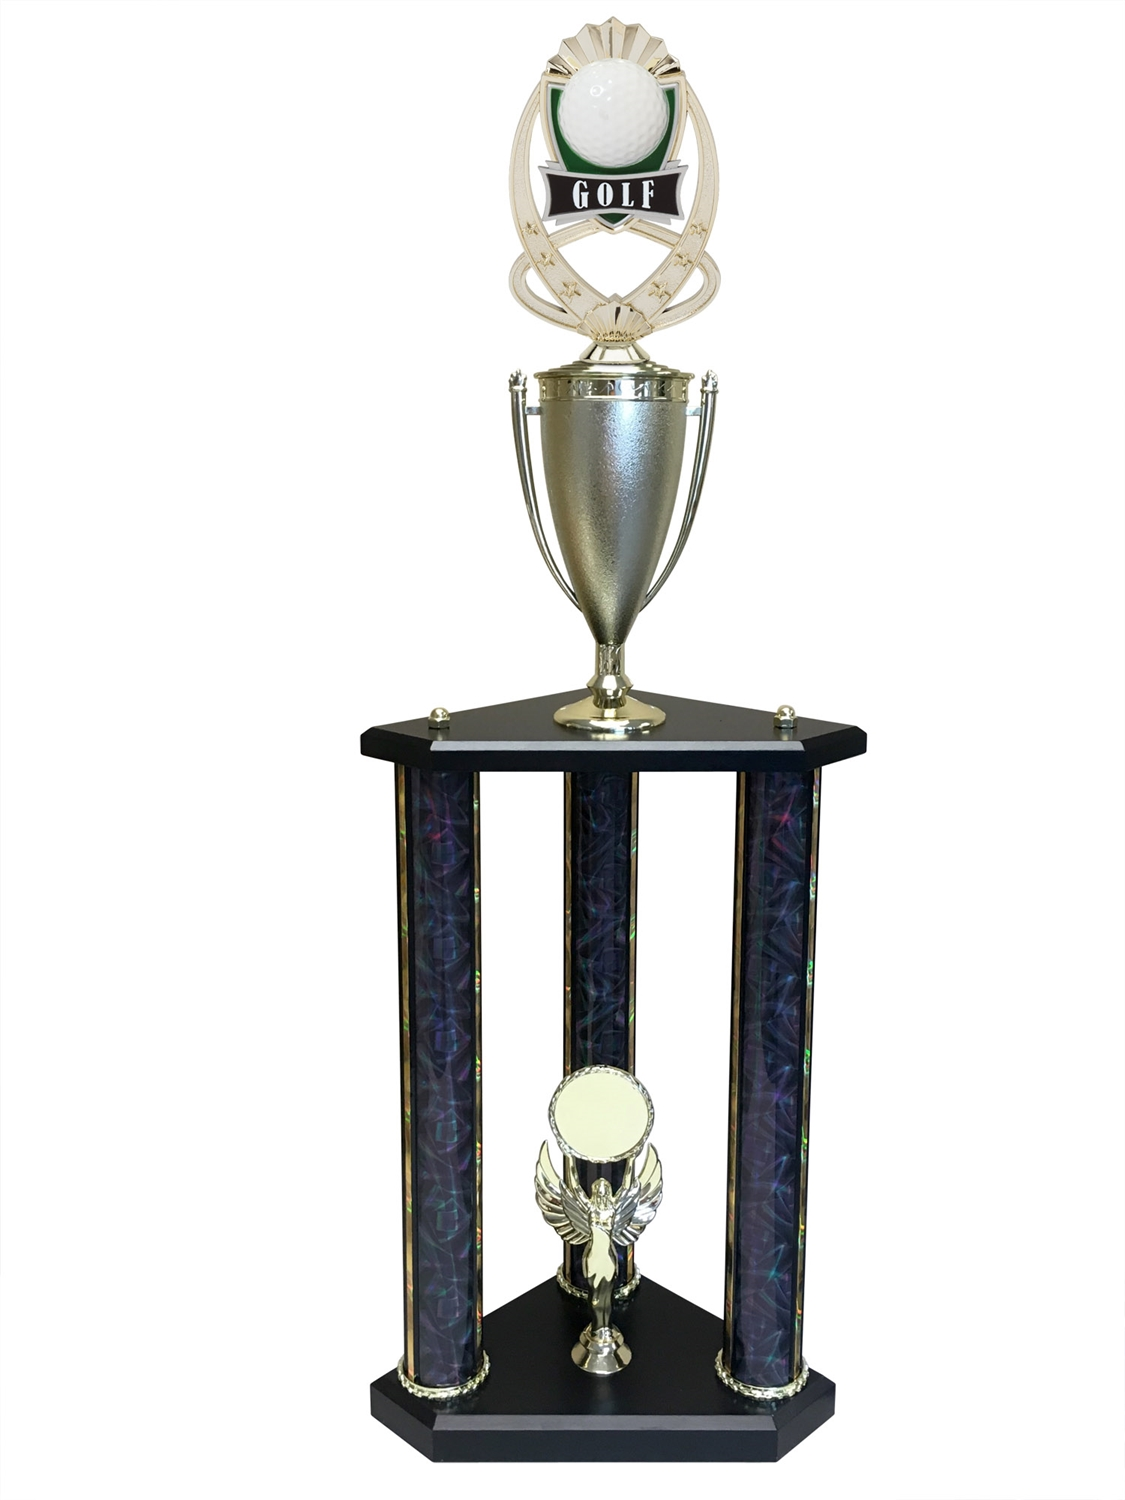 3 Post Golf Trophy in 11 colors & 3 sizes